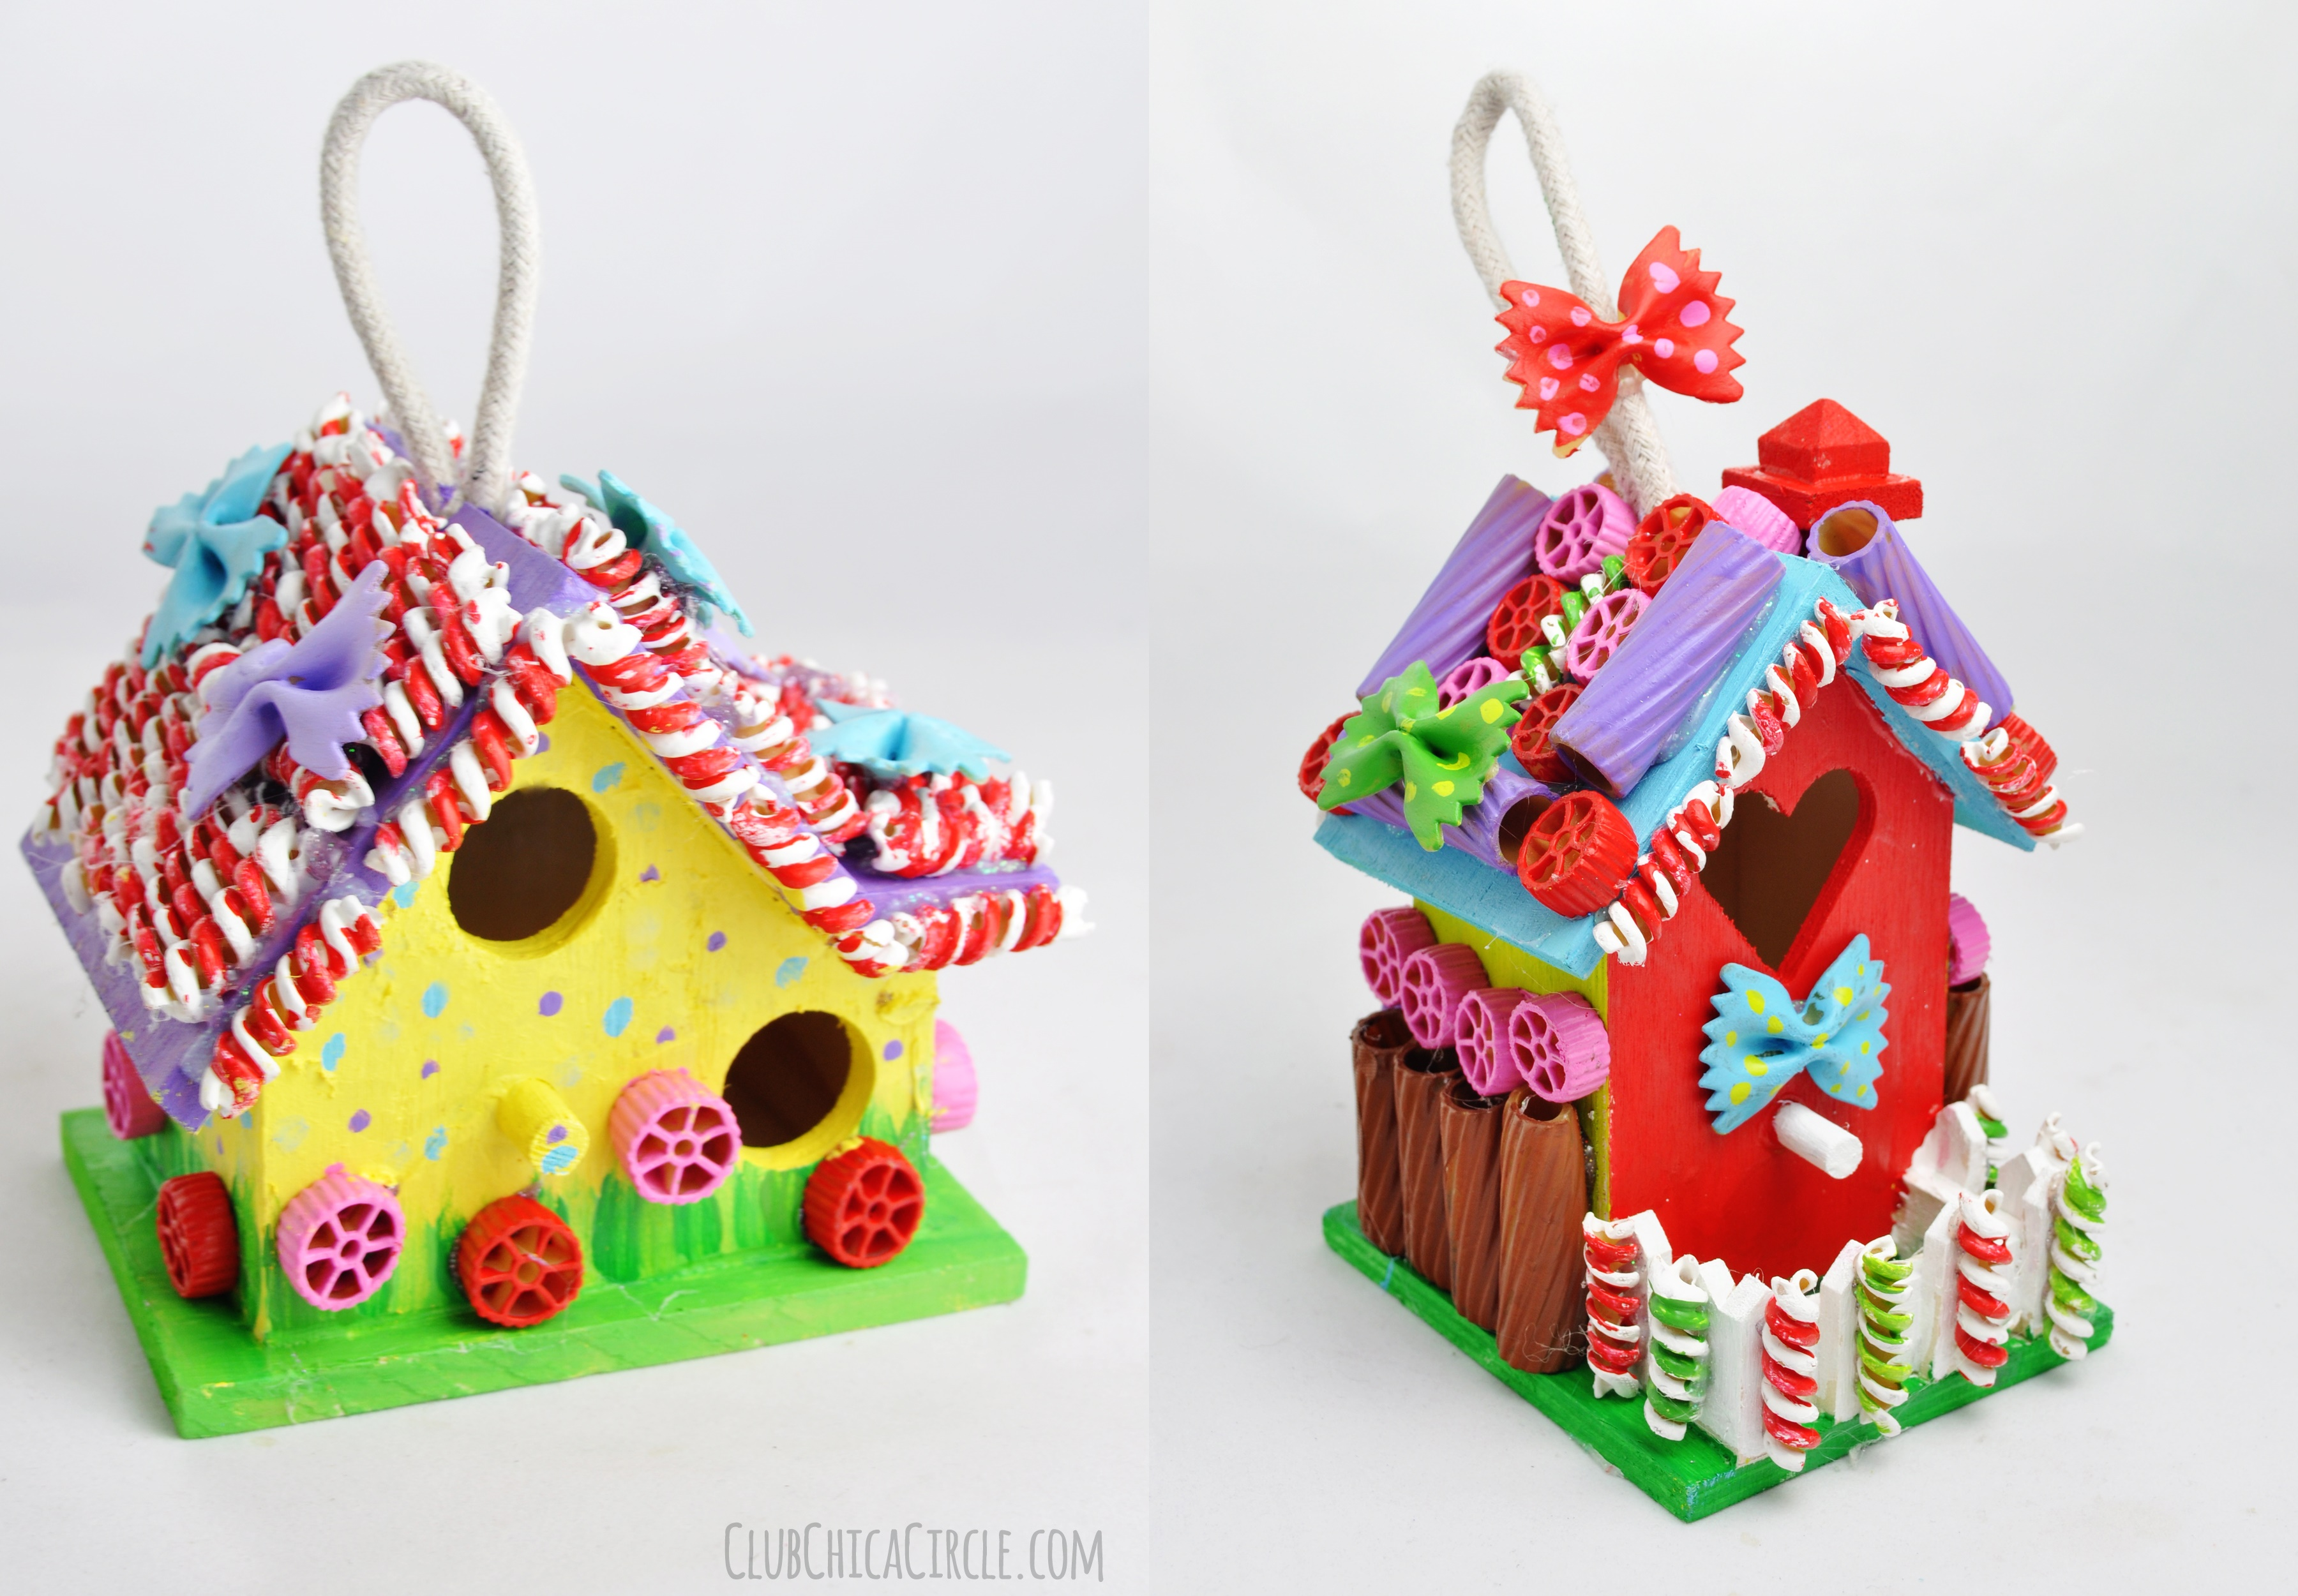 10 awesome gingerbread house ideas parentmap photo credit club chica circle solutioingenieria Choice Image